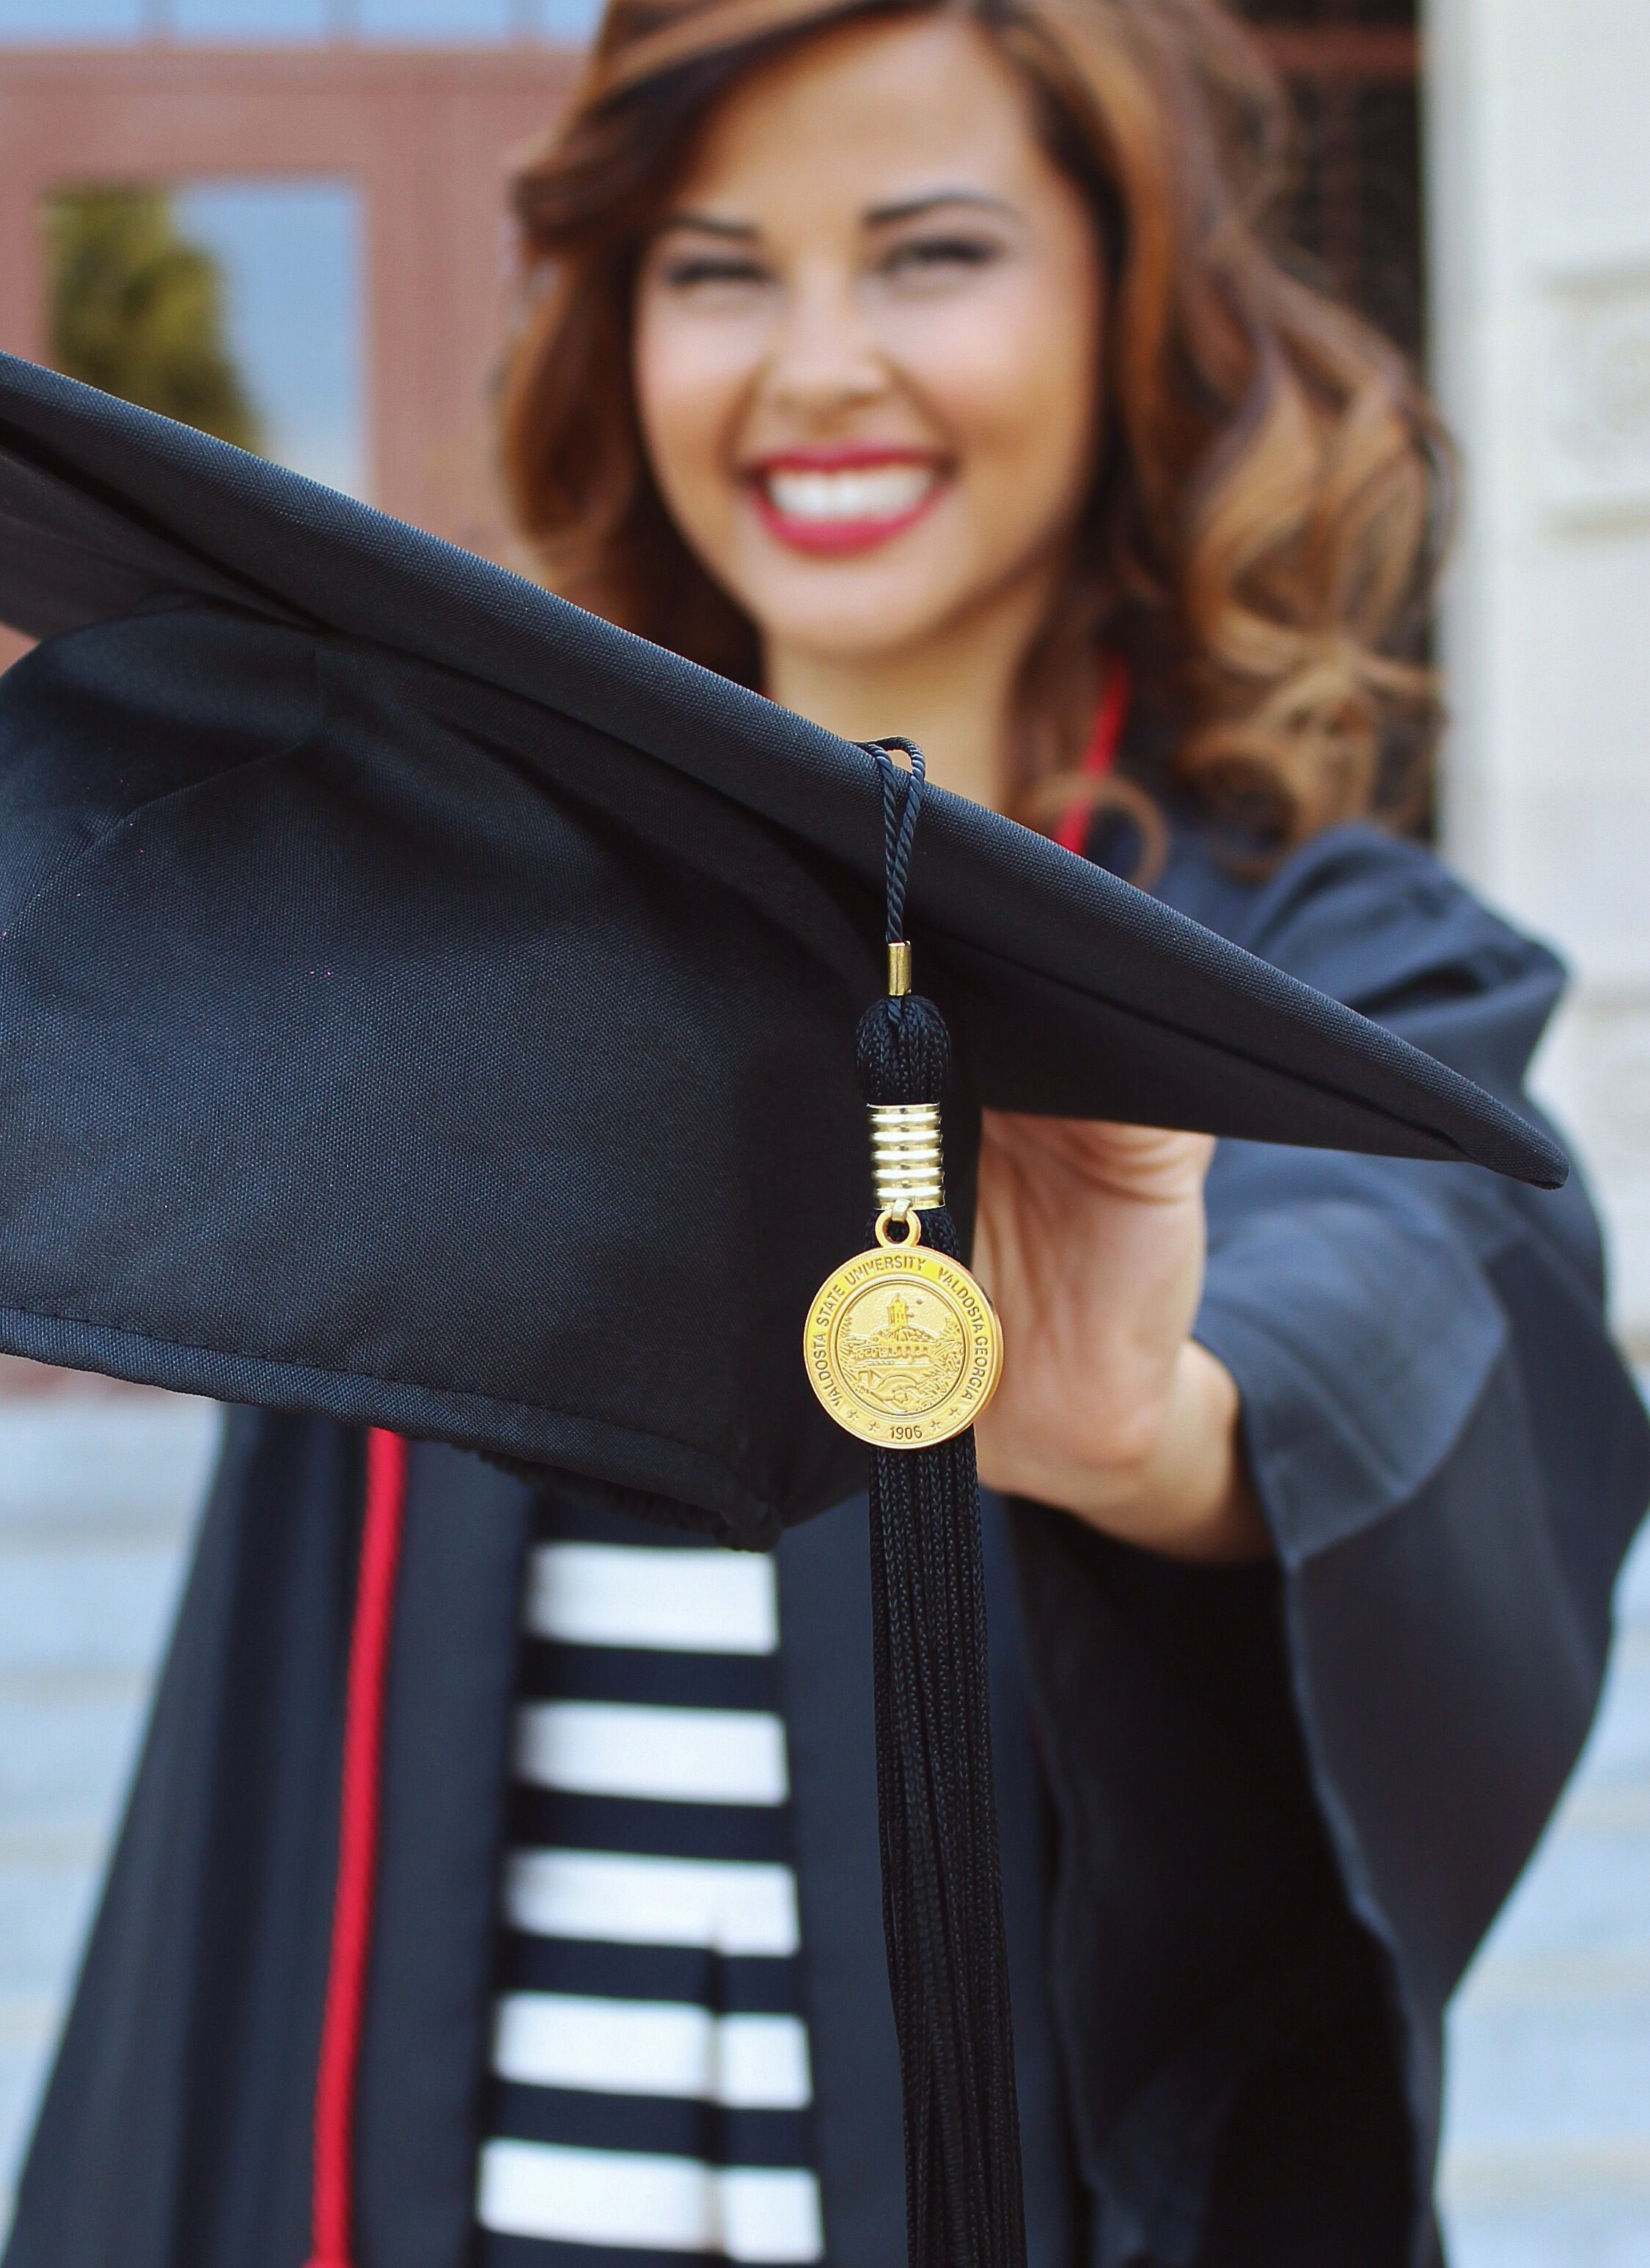 College Graduation Party Ideas and Themes